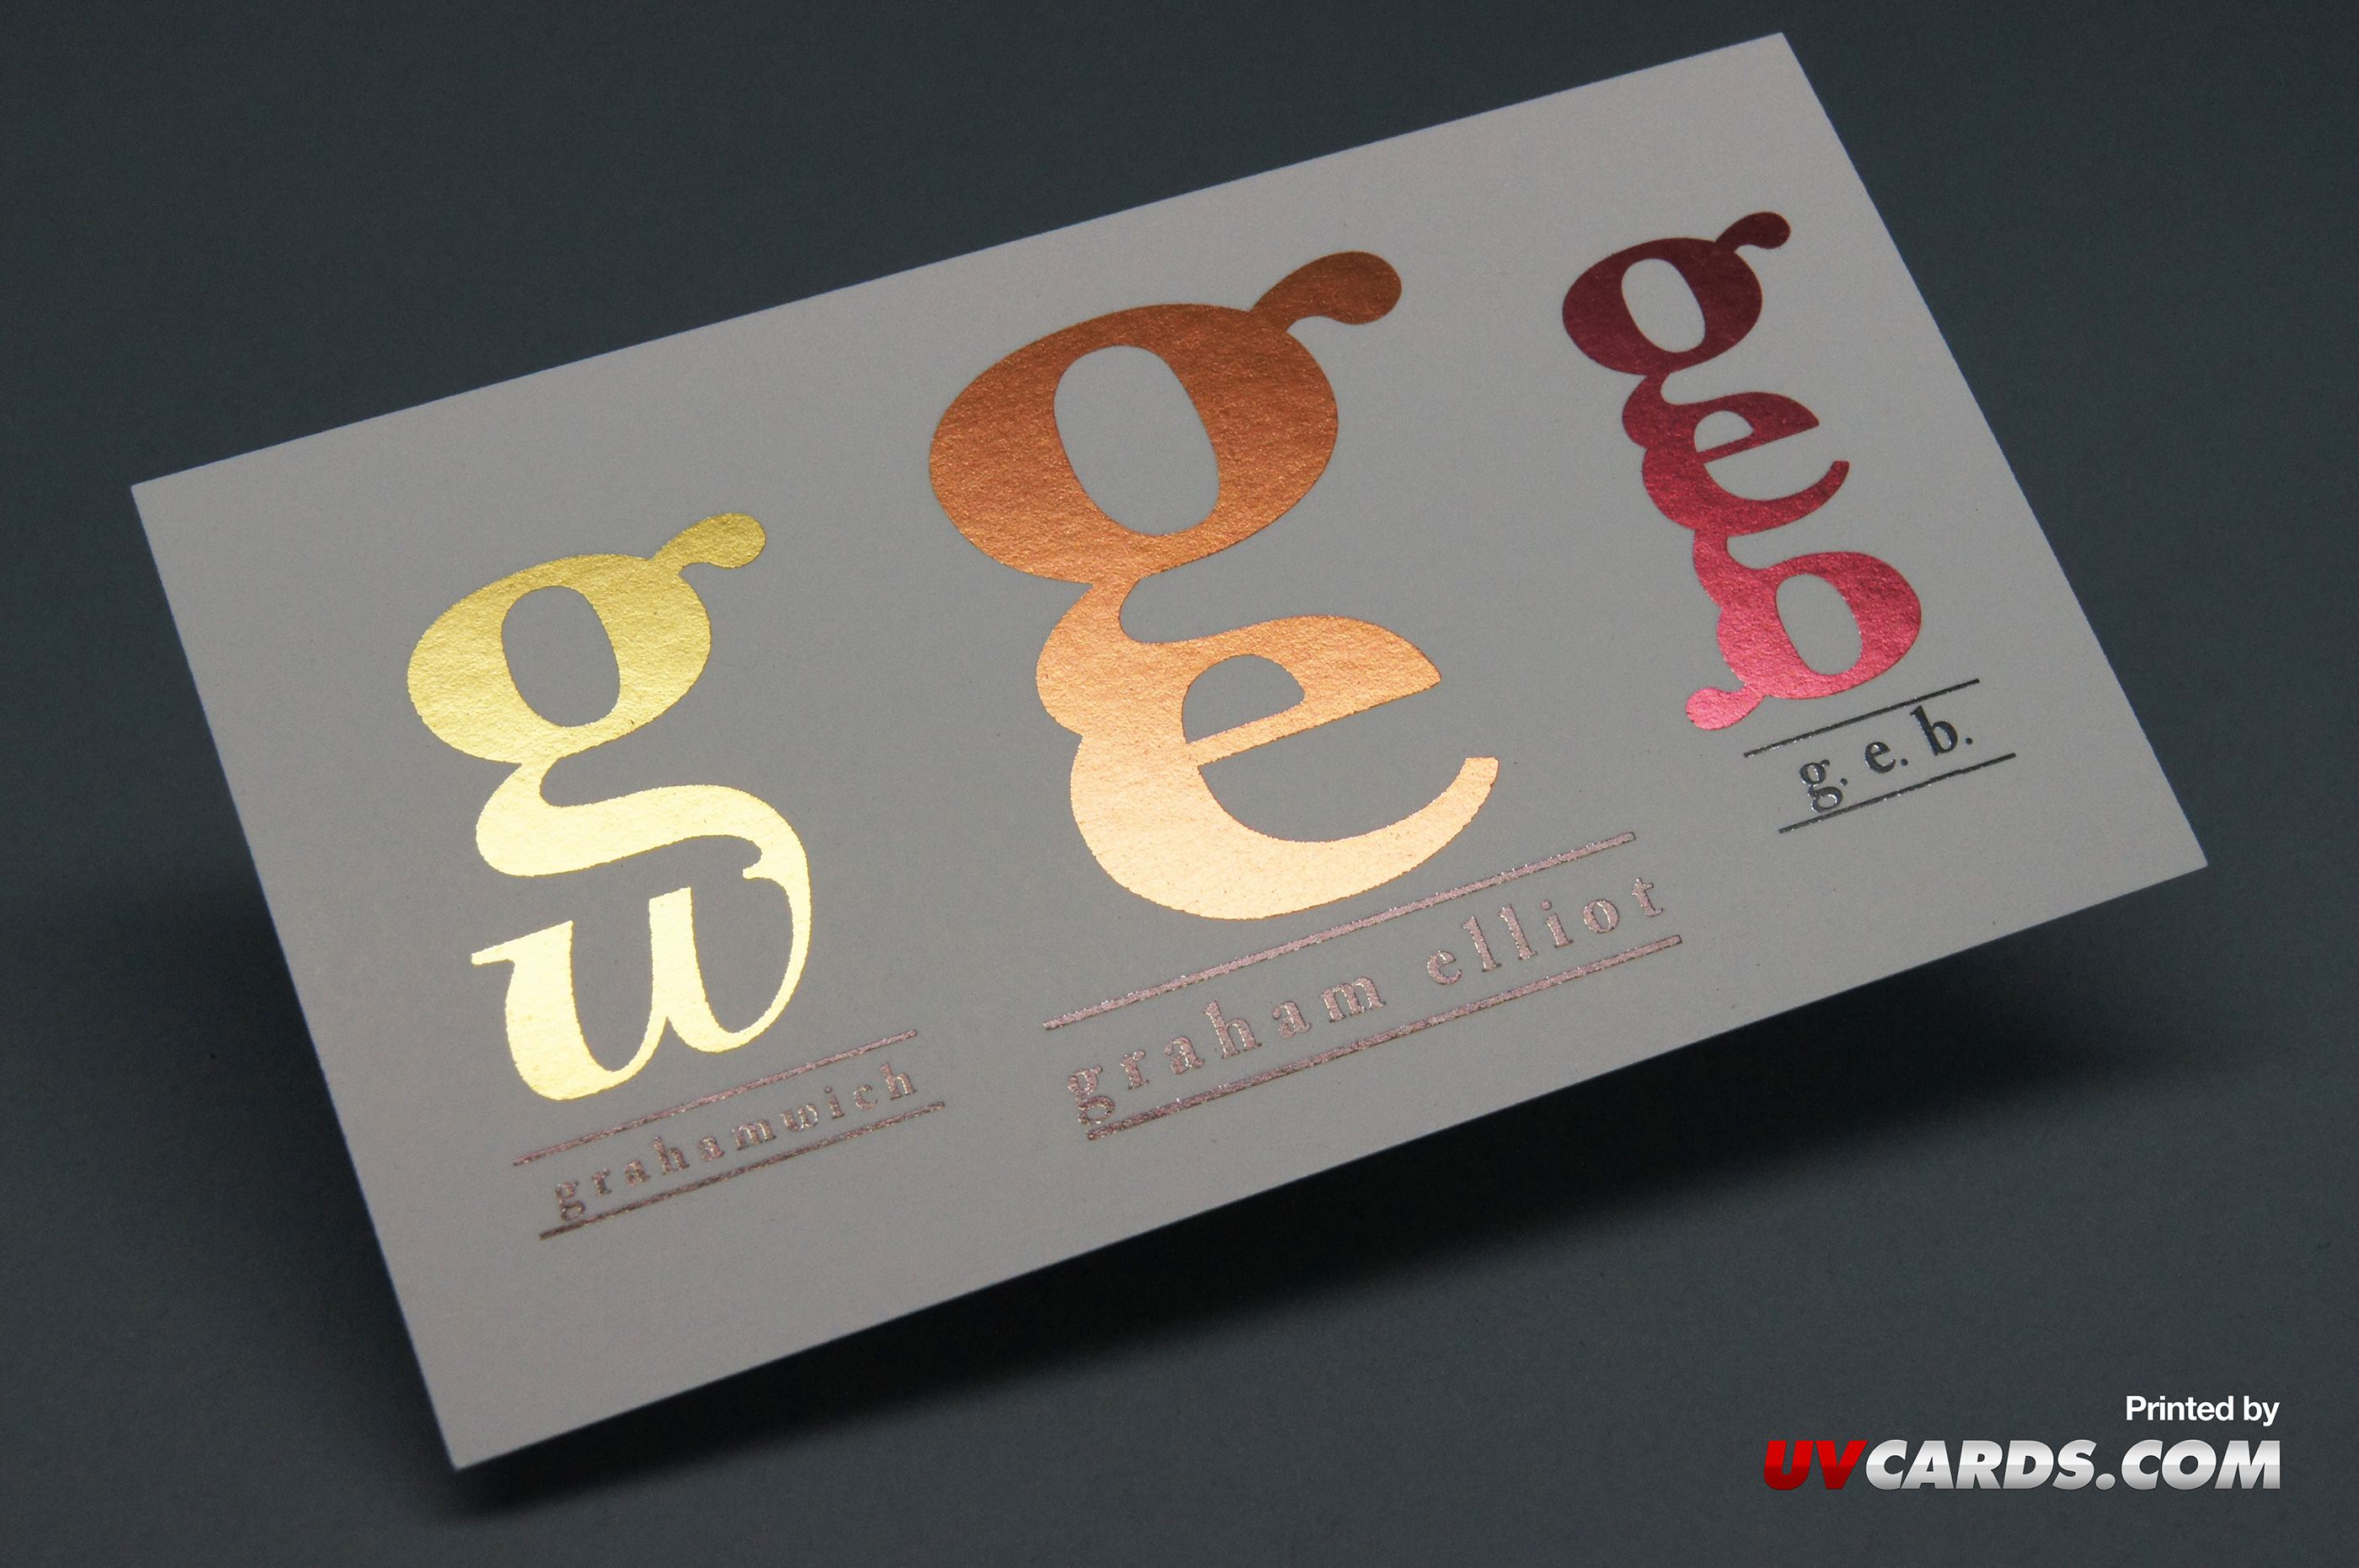 business cards with inline foil printed for graham elliot by uv